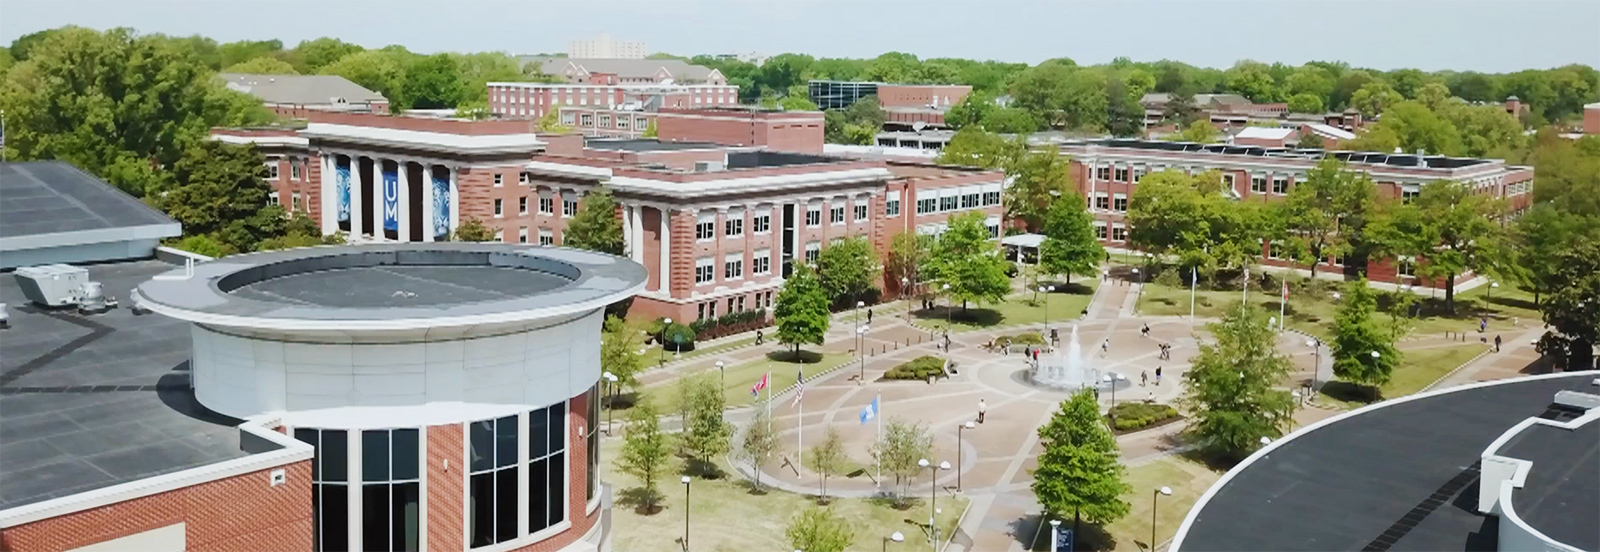 An aerial photo of the University of Memphis central plaza and fountain